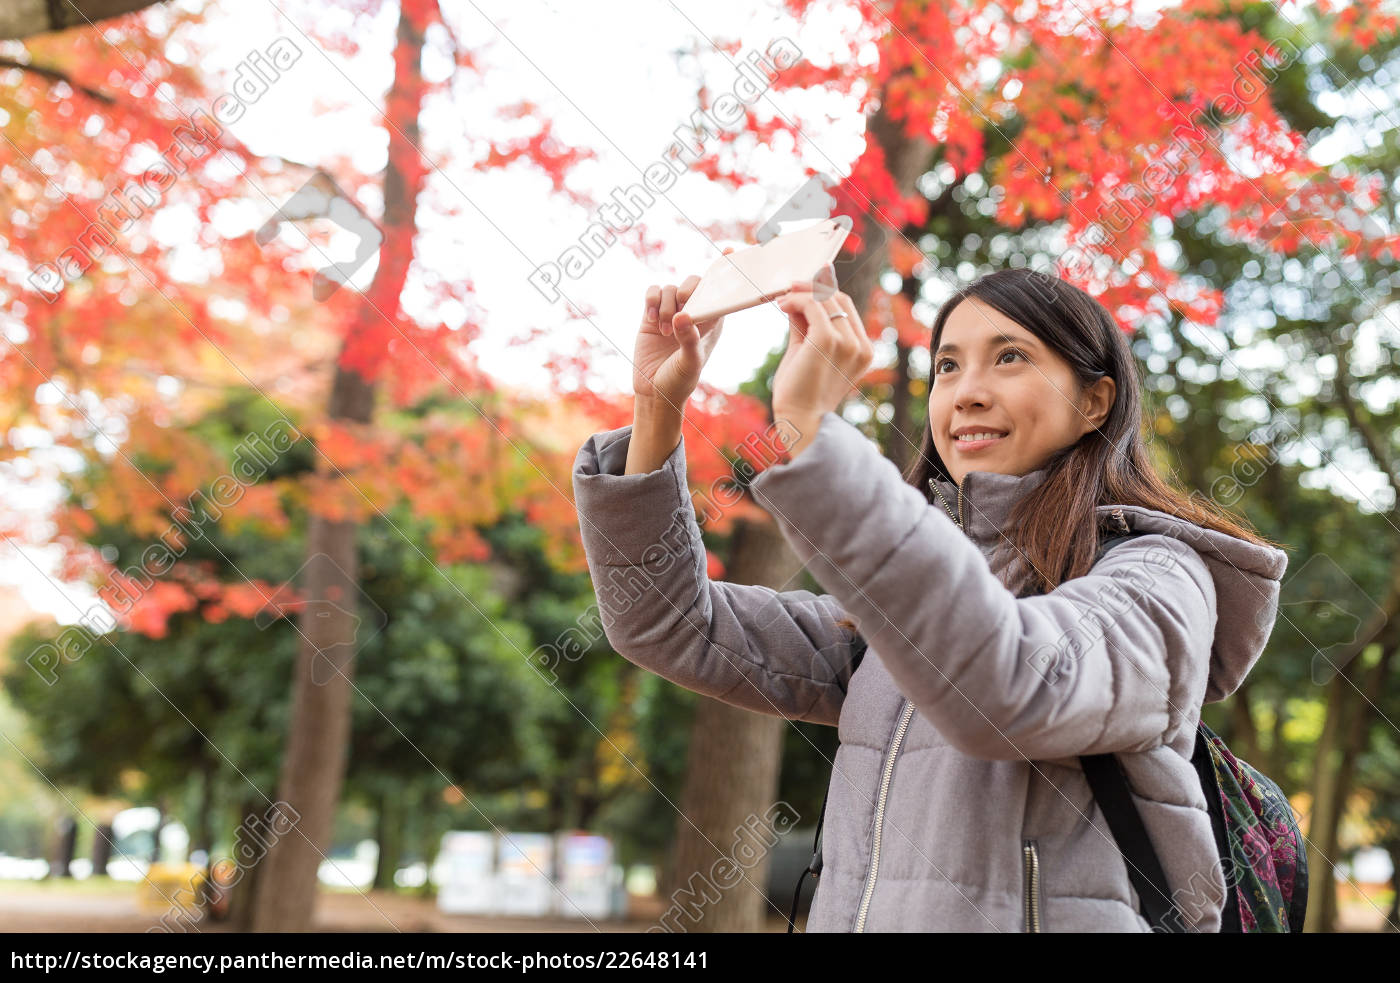 woman, taking, photo, with, cellphone, at - 22648141